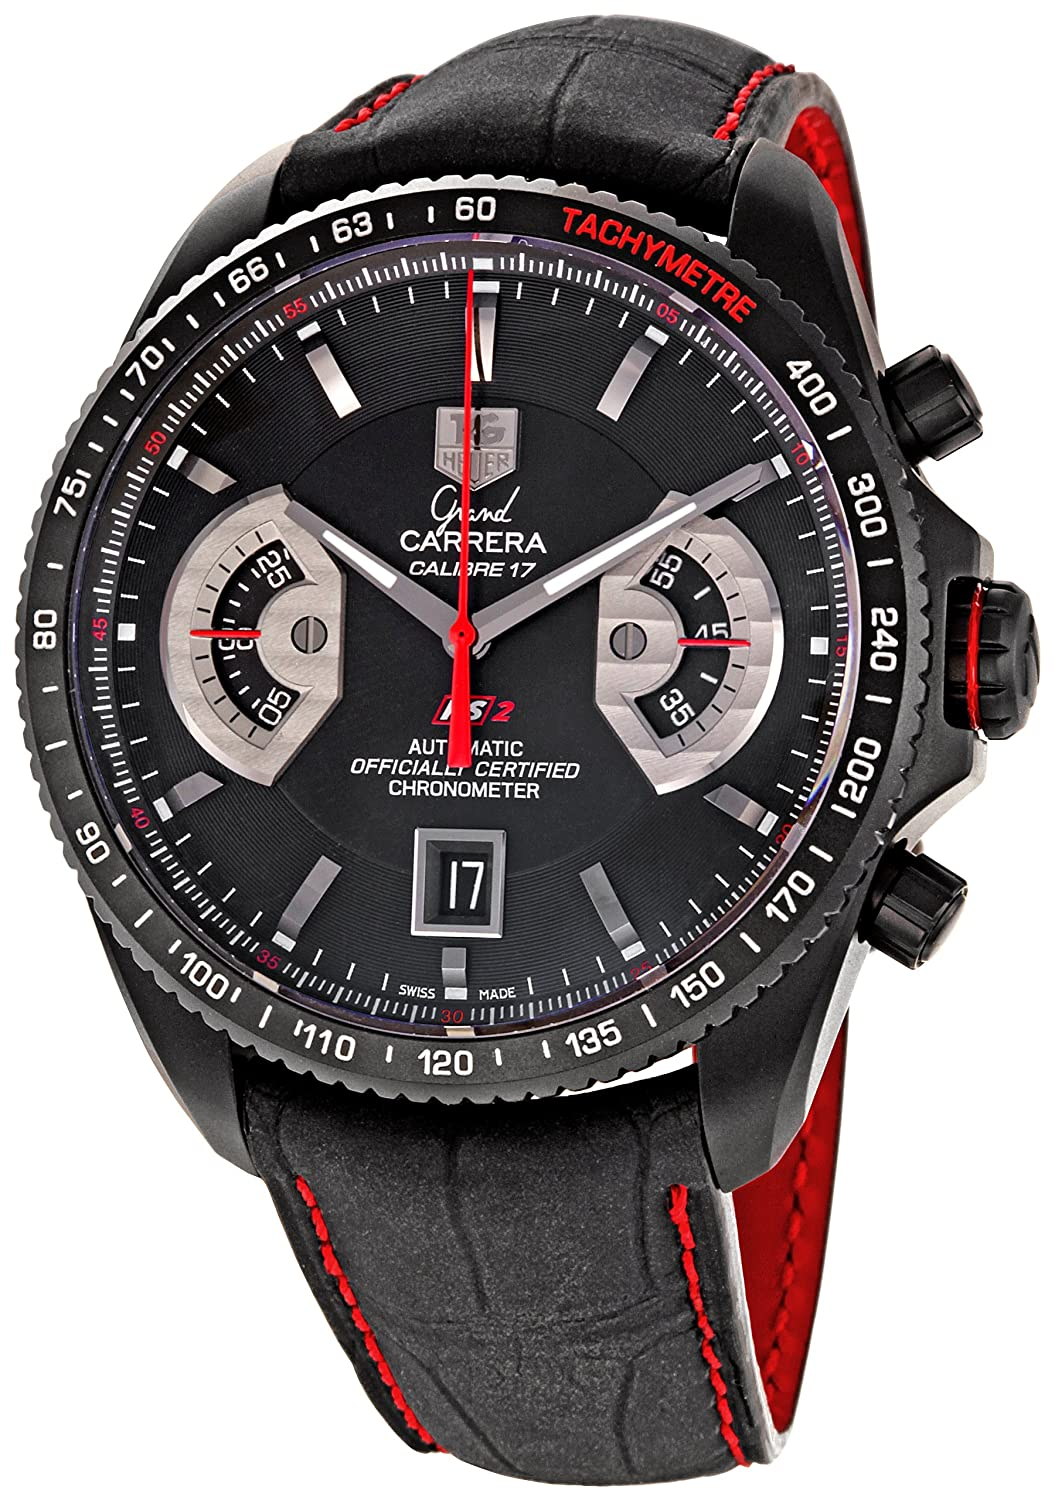 a7ab76215a5 Amazon.com: TAG Heuer Men's CAV518B.FC6237 Grand Carrera Automatic  Chronograph Watch: Tag Heuer: Watches